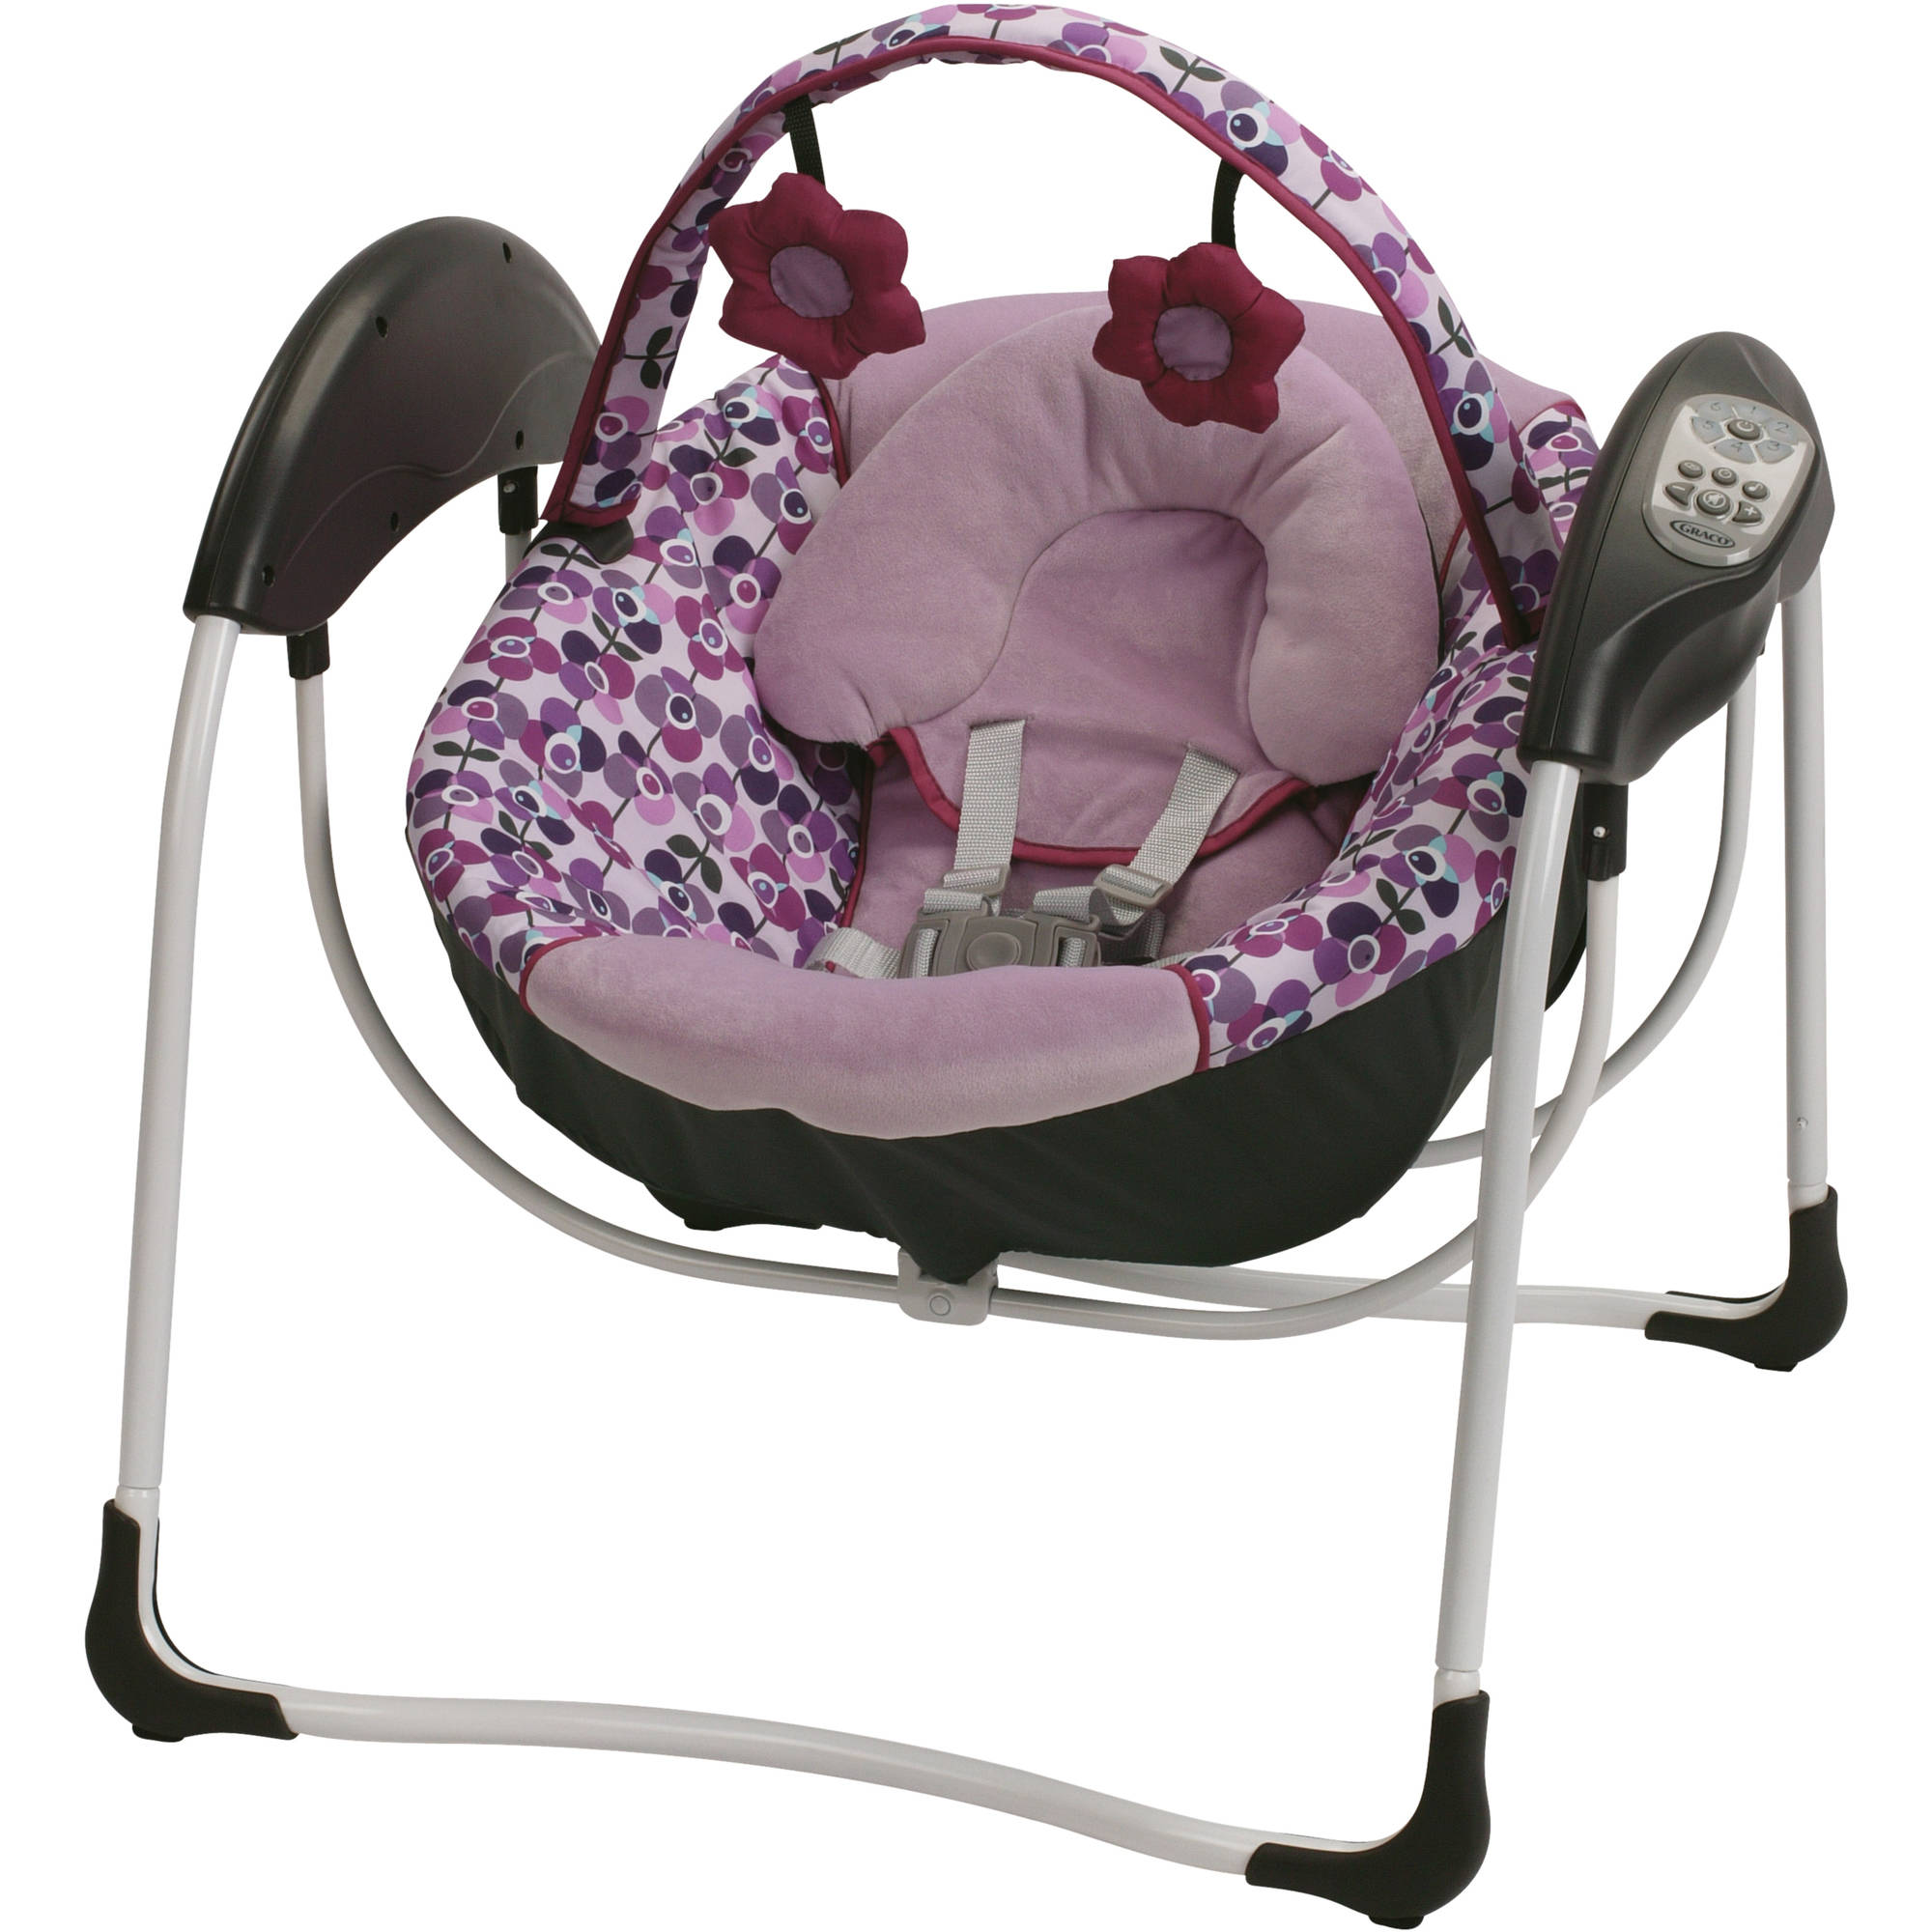 Graco Glider Petite Gliding Swing, Pammie